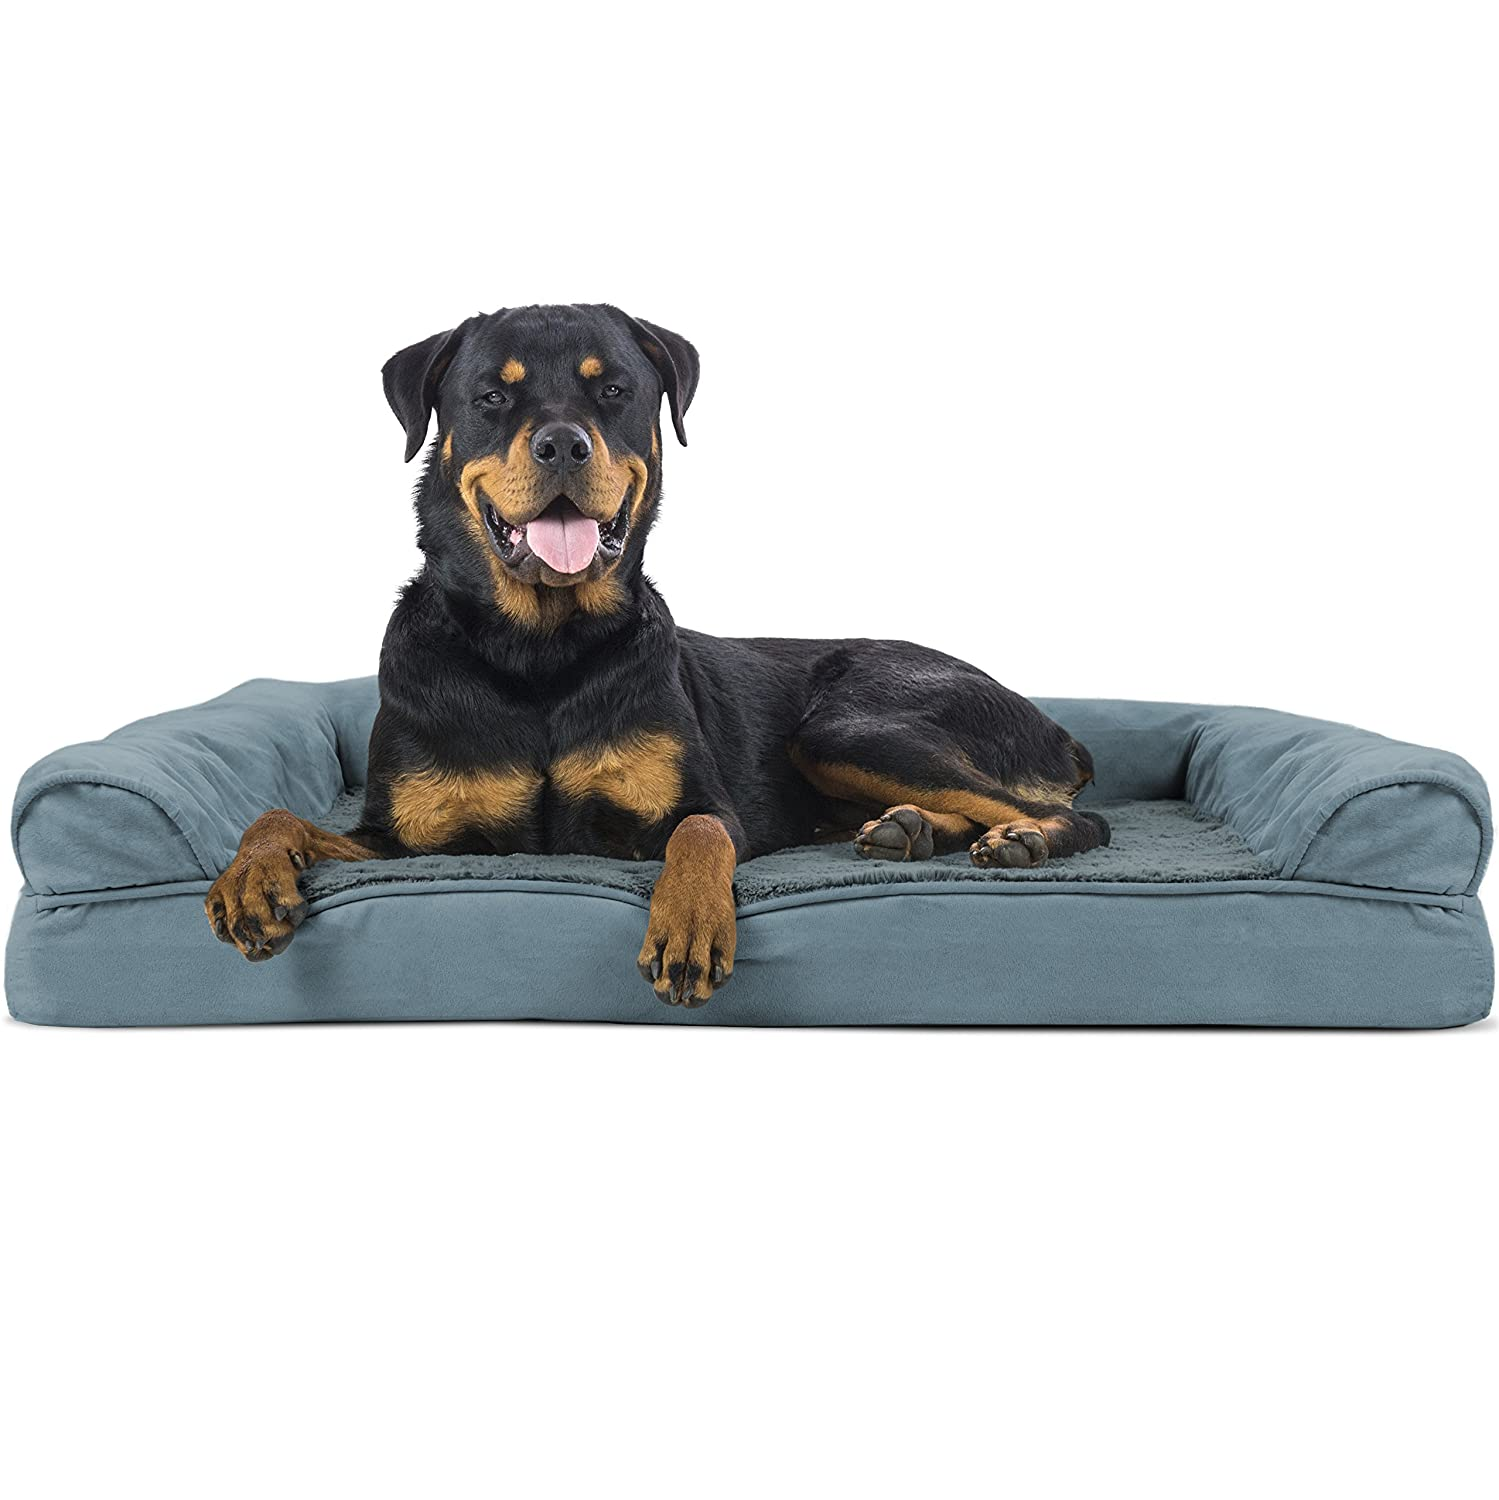 FurHaven Pet Dog Bed   Orthopedic Ultra Plush Sofa-Style Couch Pet Bed for Dogs & Cats, Deep Pool, Jumbo